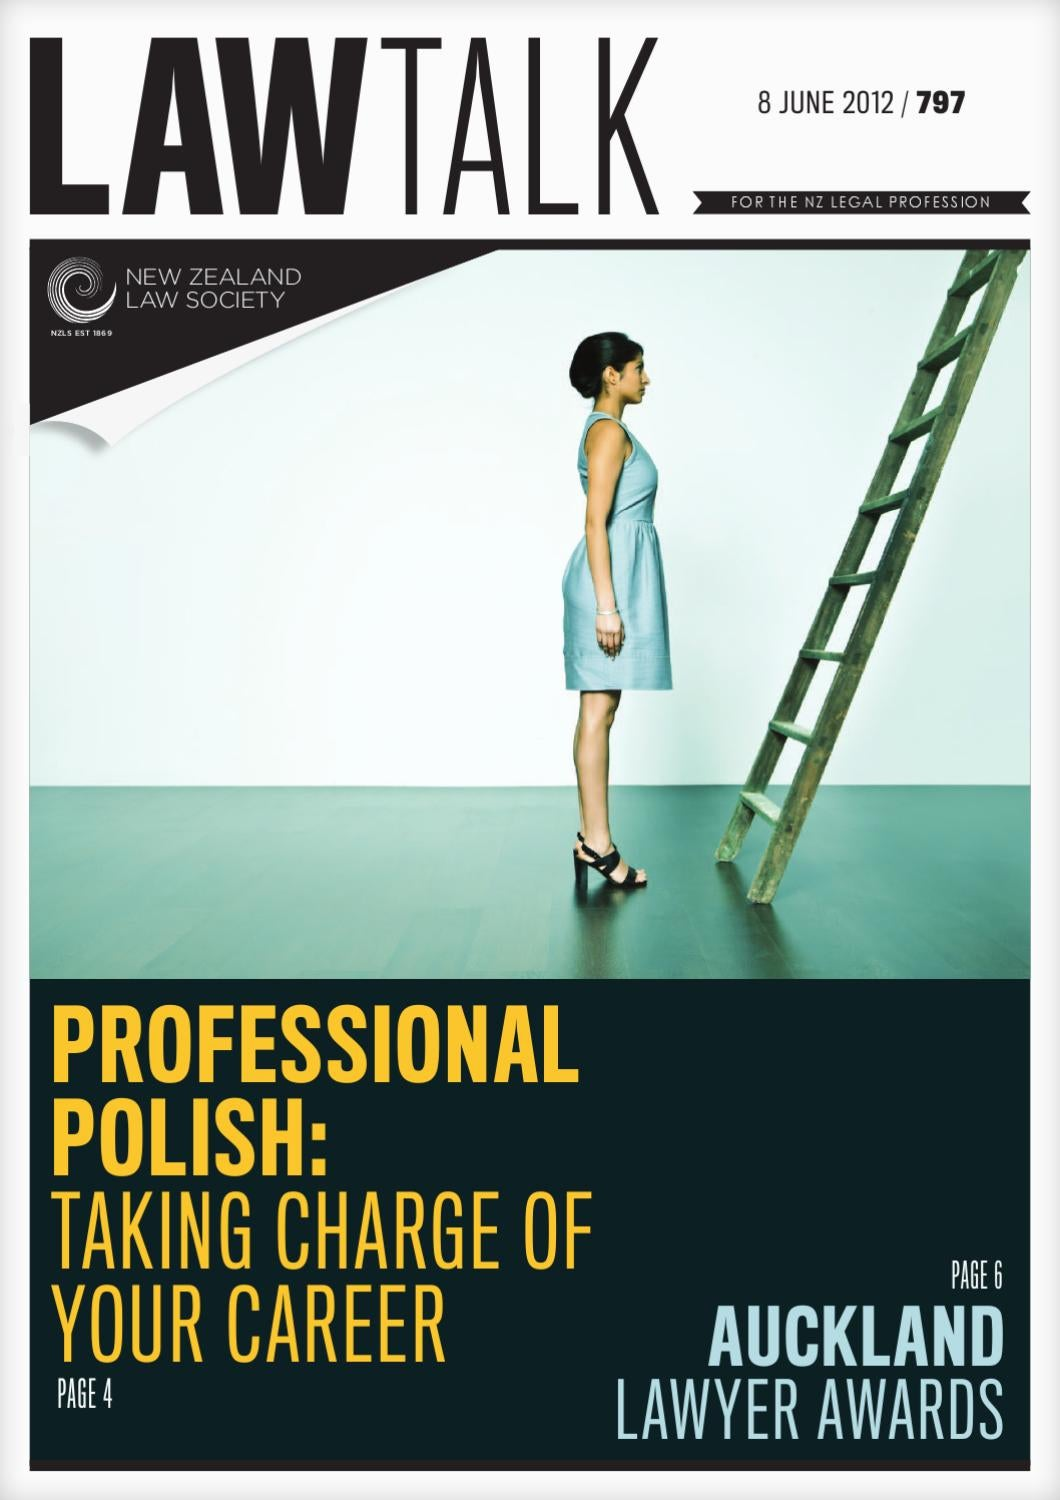 lawtalk issue 797 by nz law society issuu